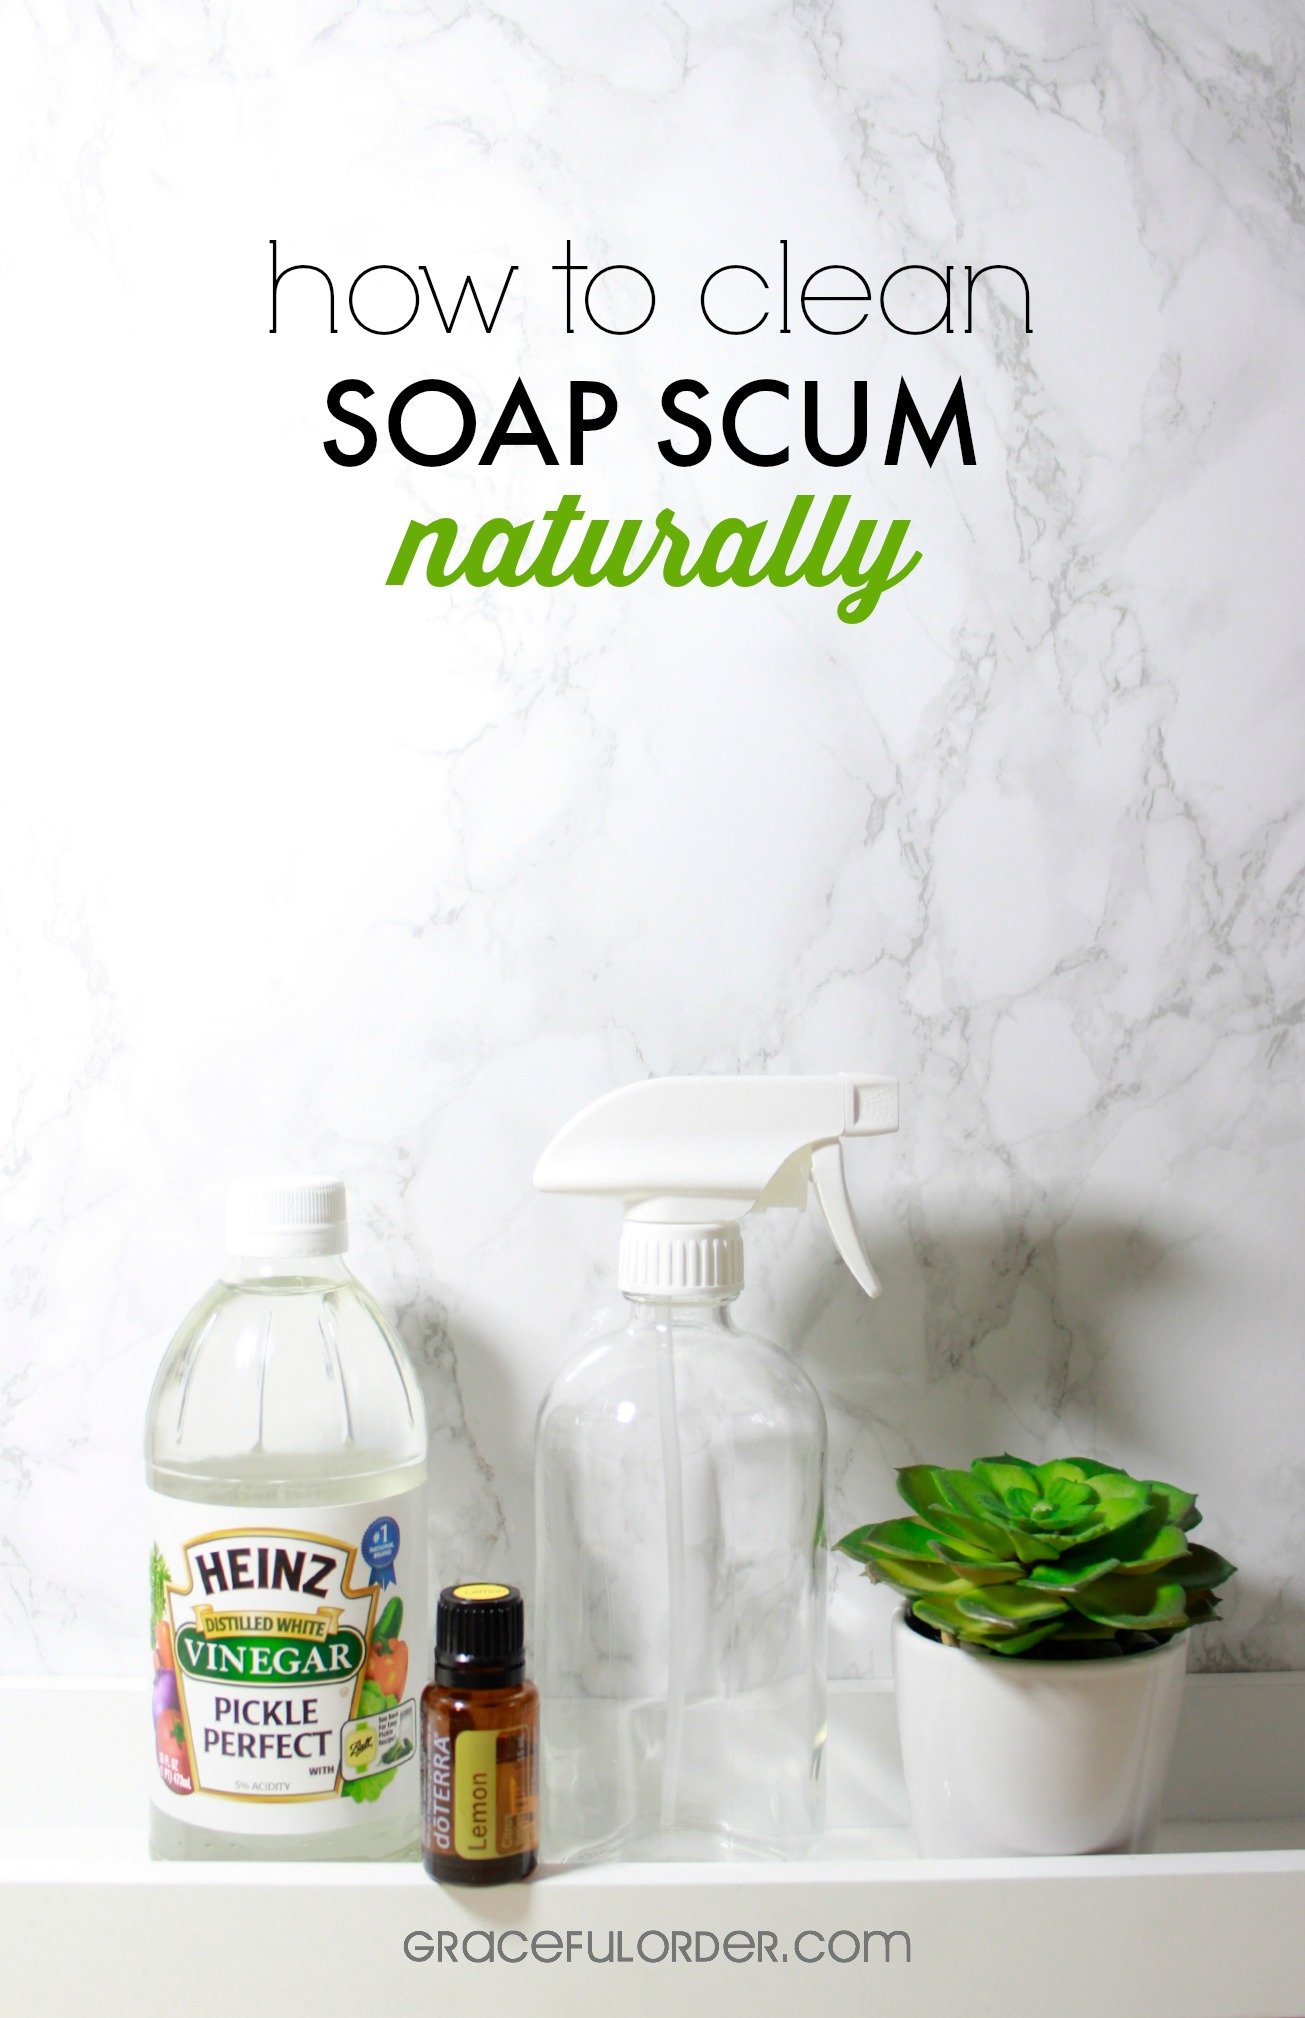 Clean Soap Scum Naturally - Graceful Order